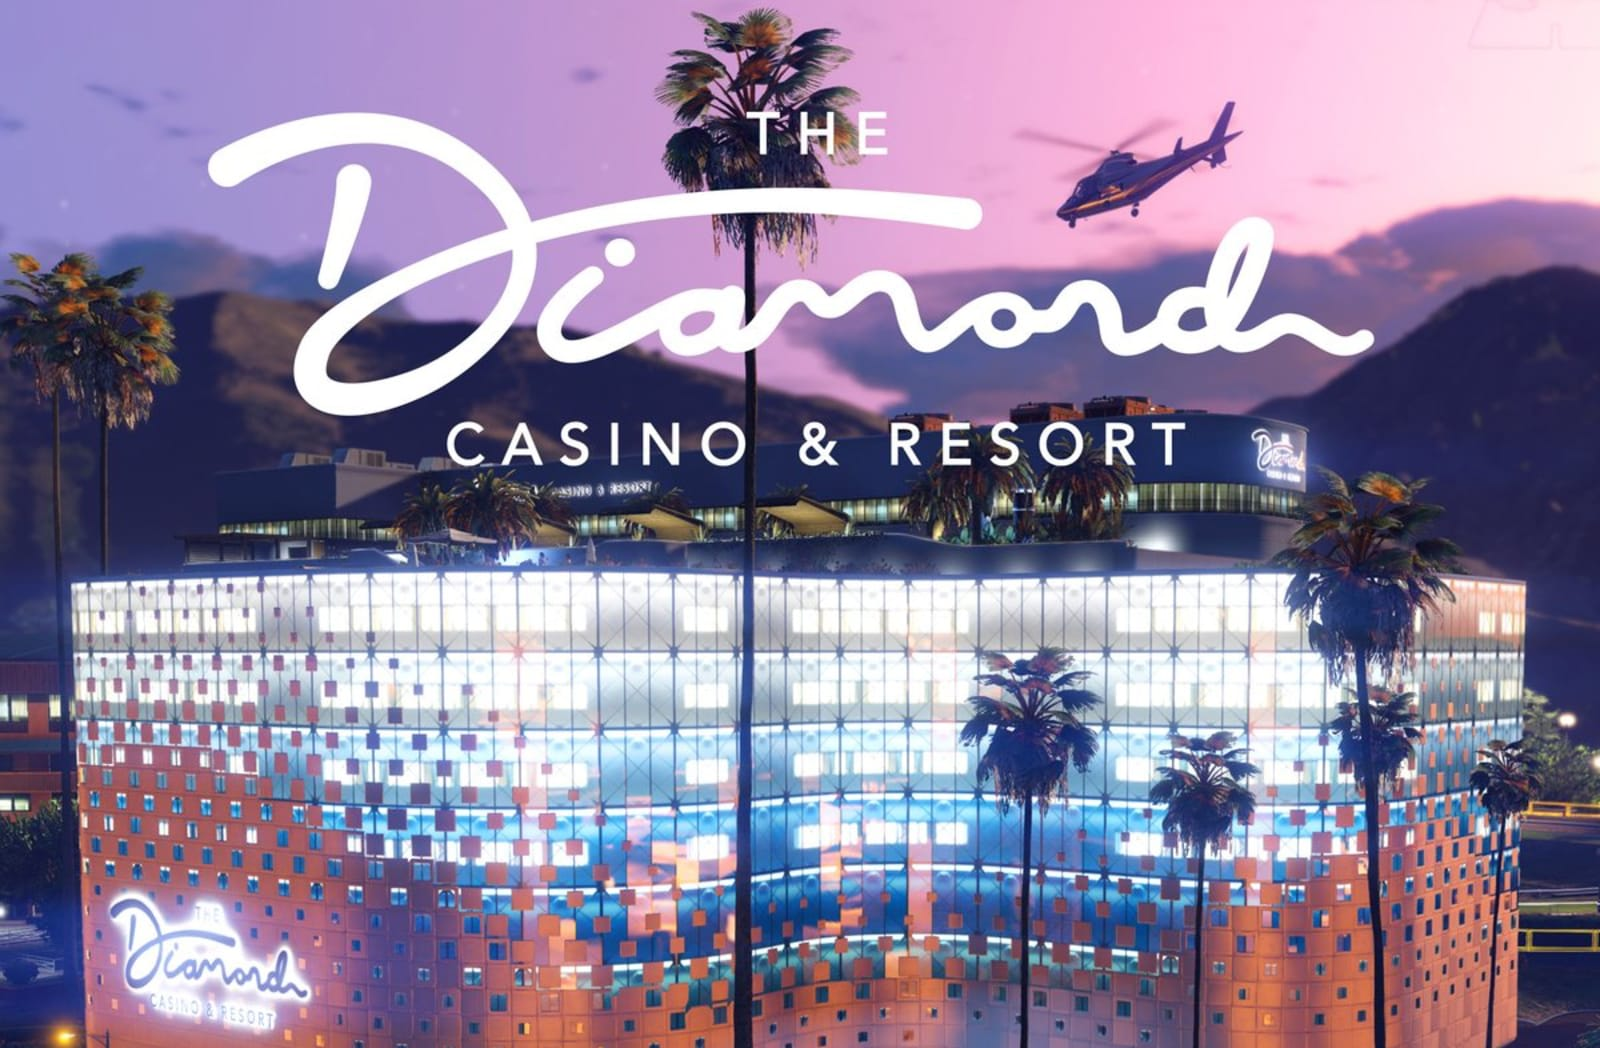 GTA: Online' opens the doors to The Diamond Casino & Resort